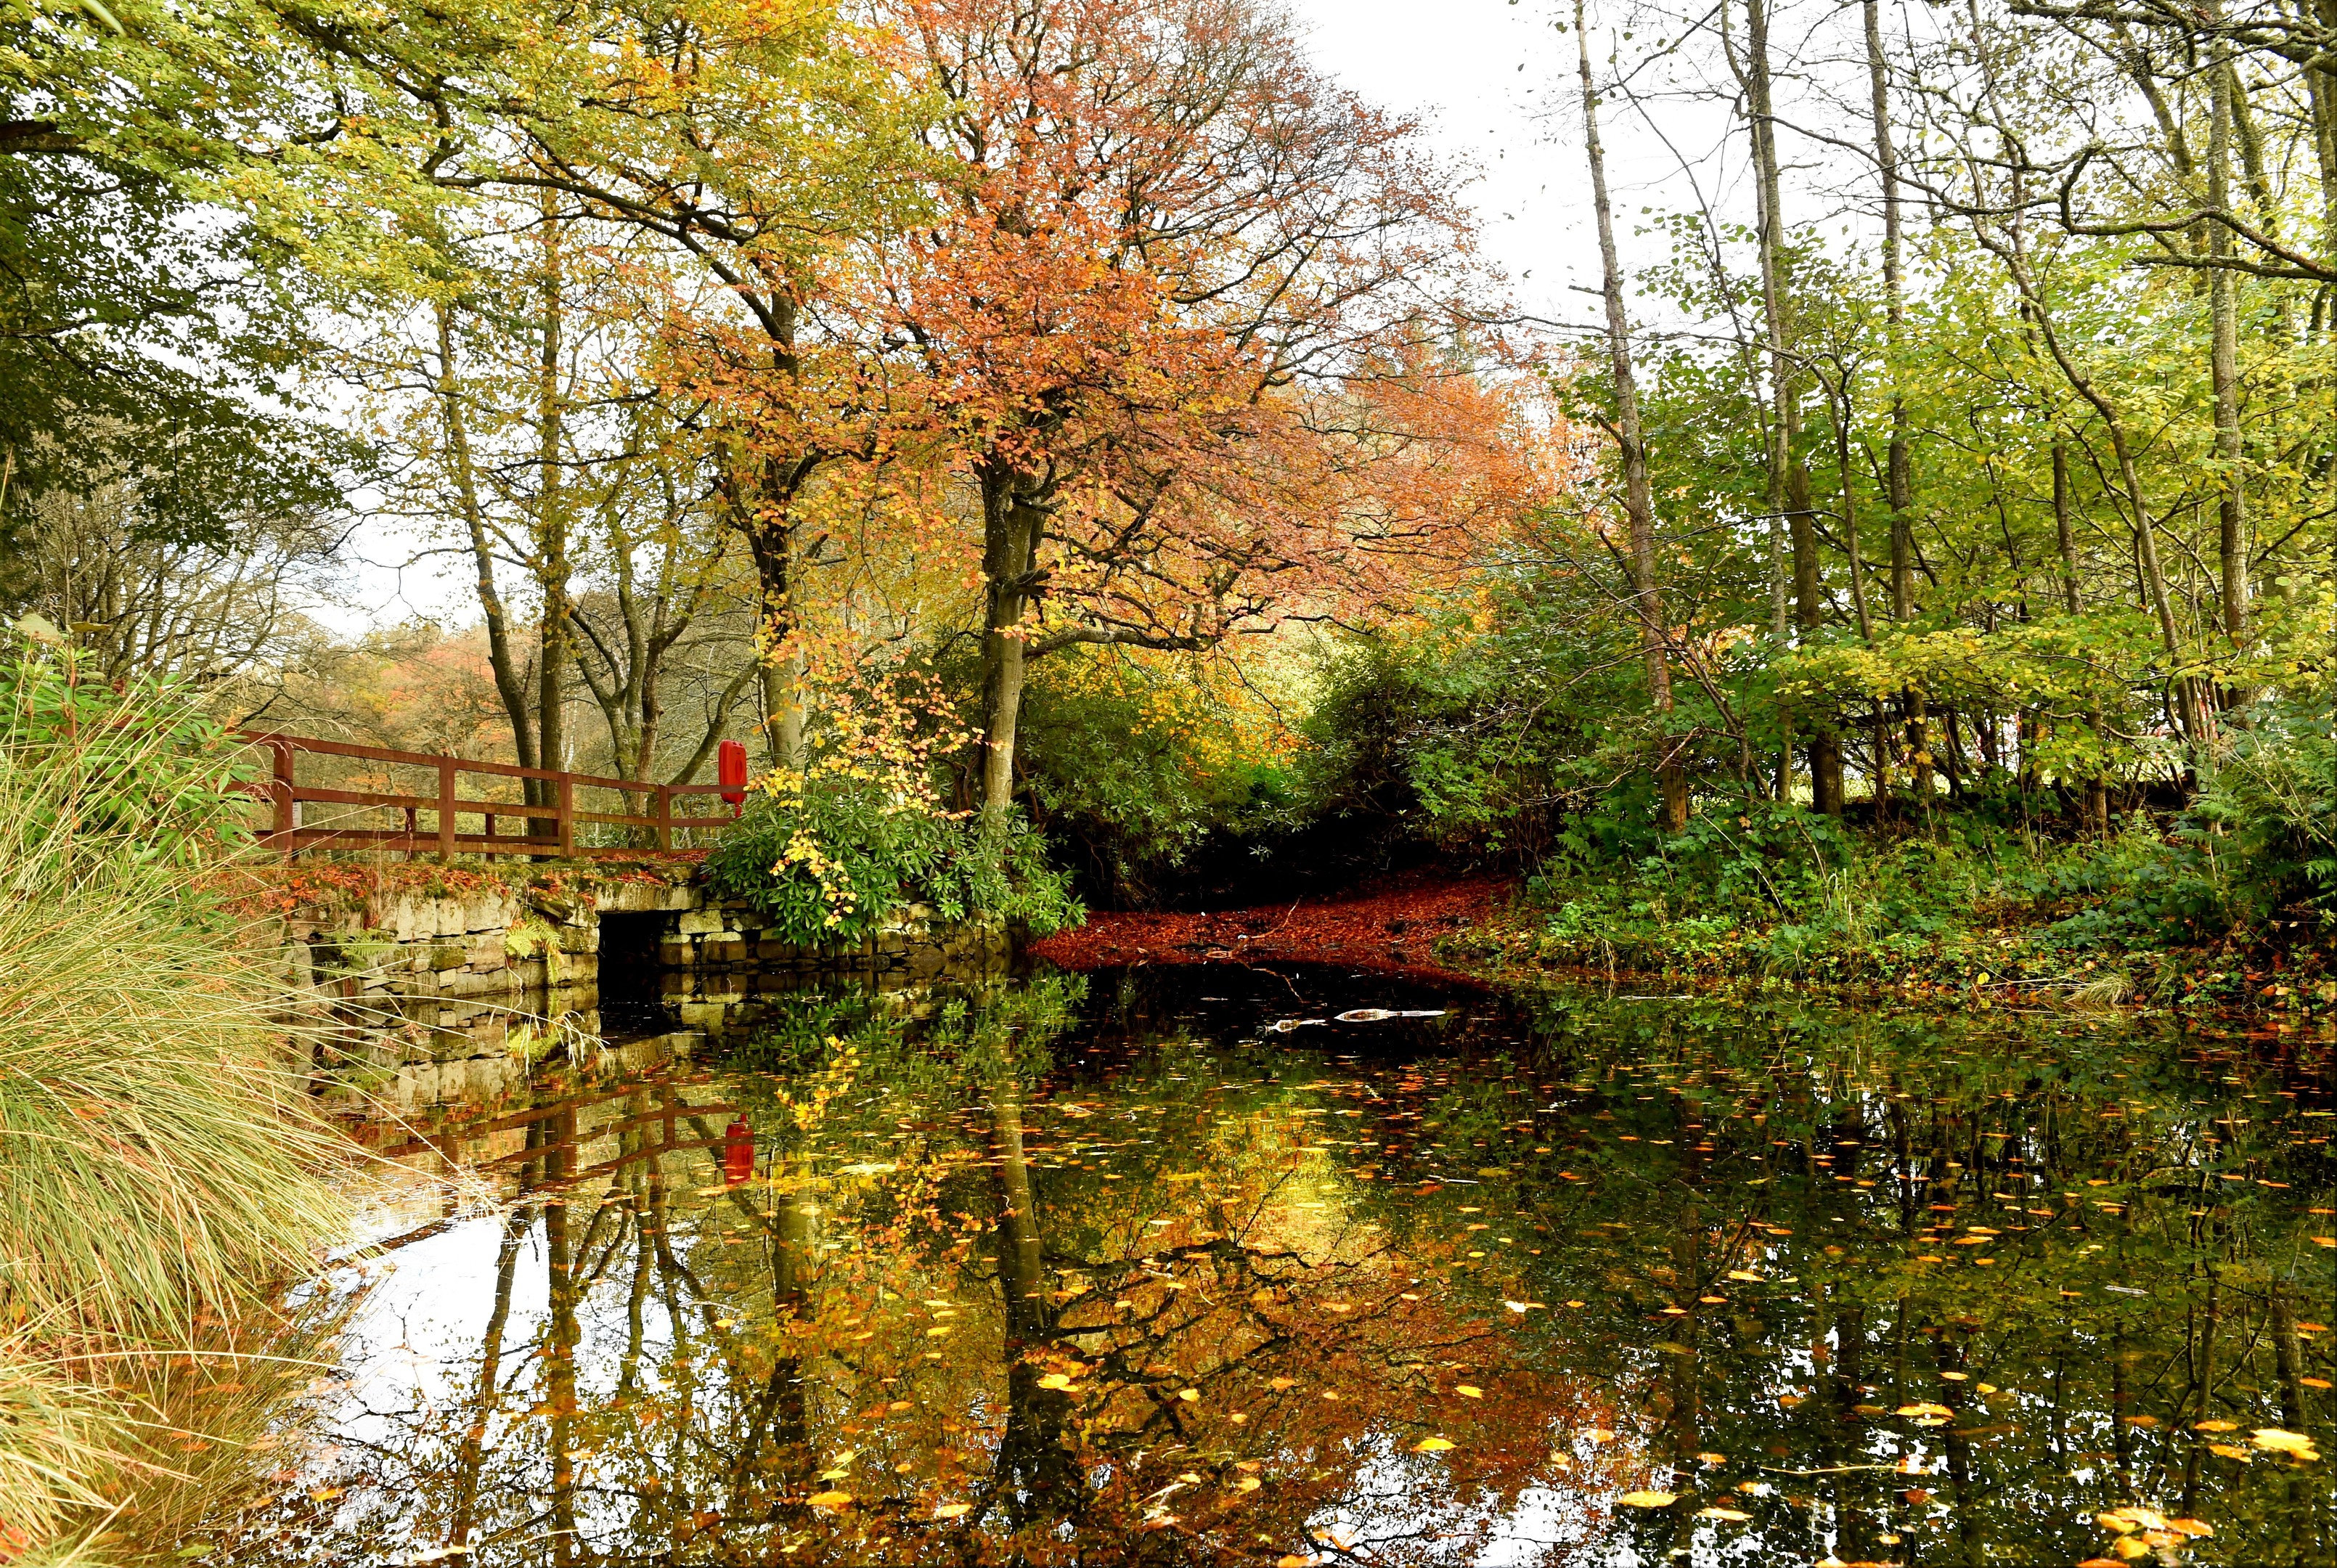 Autumn colours at Aden Country Park, Mintlaw.  Picture by Kevin Emslie.